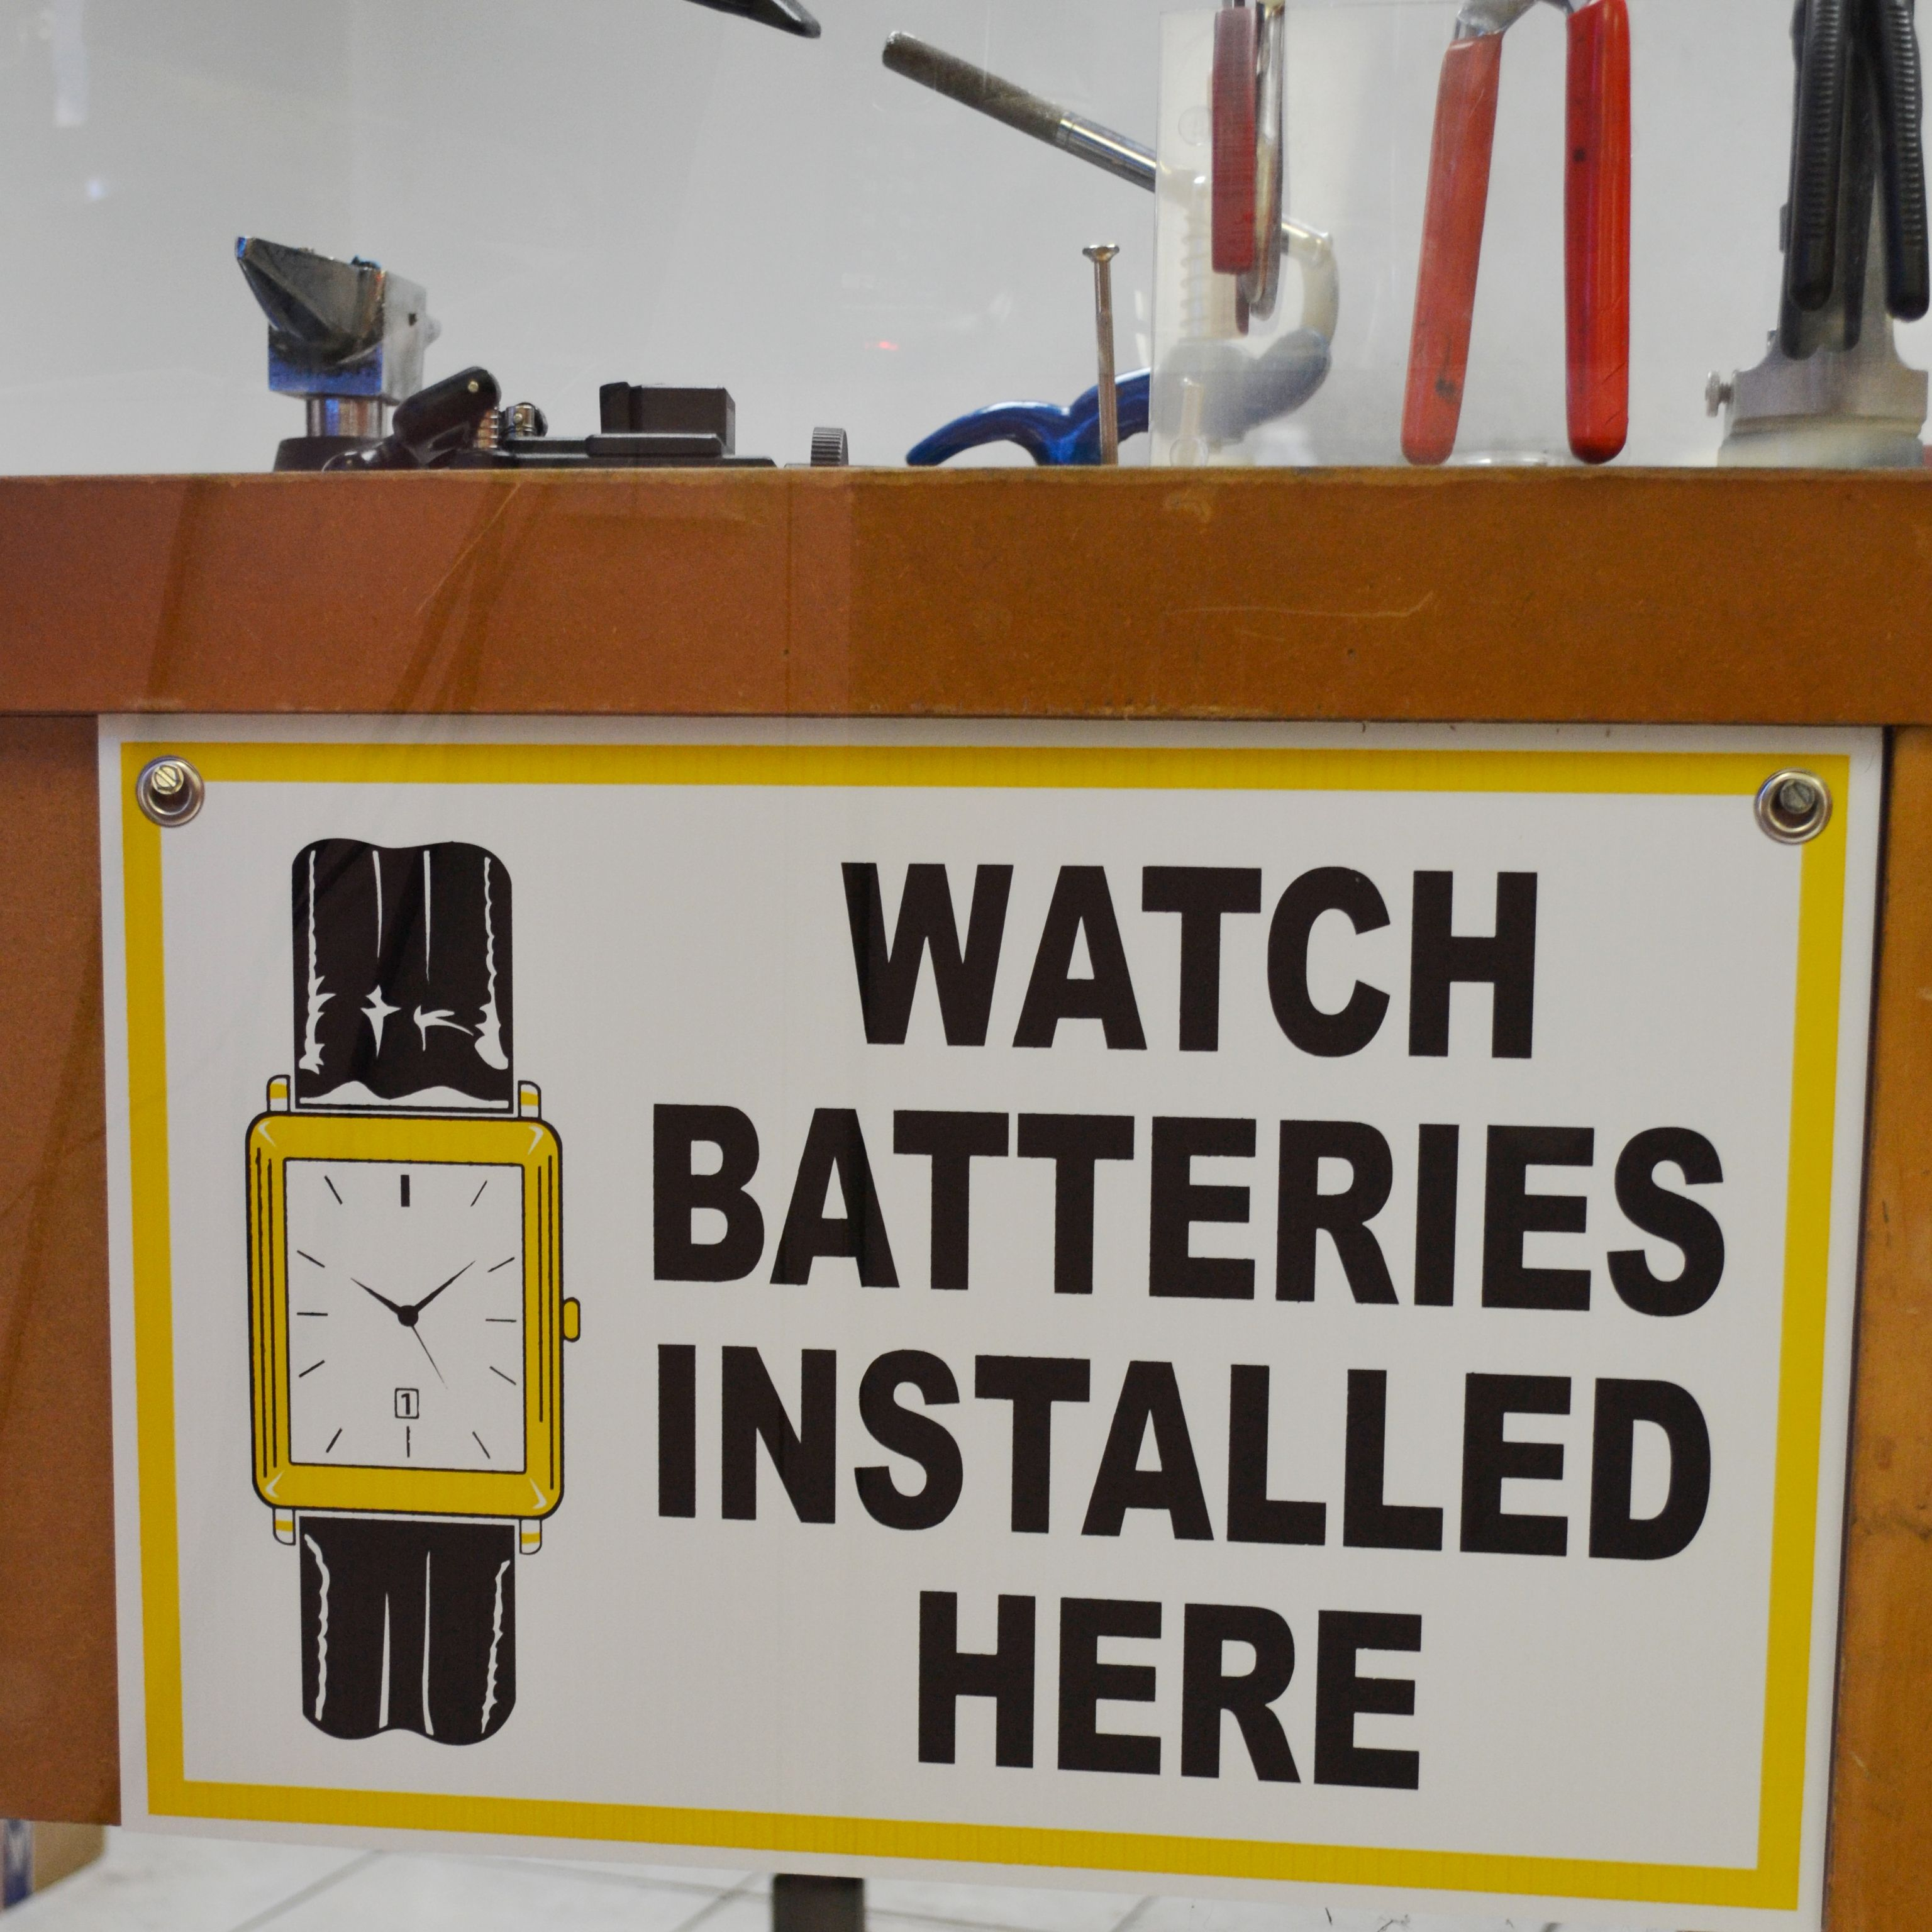 We Install Watch Batteries In A Few Minutes Come By And Get Your Watches Working Again Watch Battery Installation Jewelry Repair